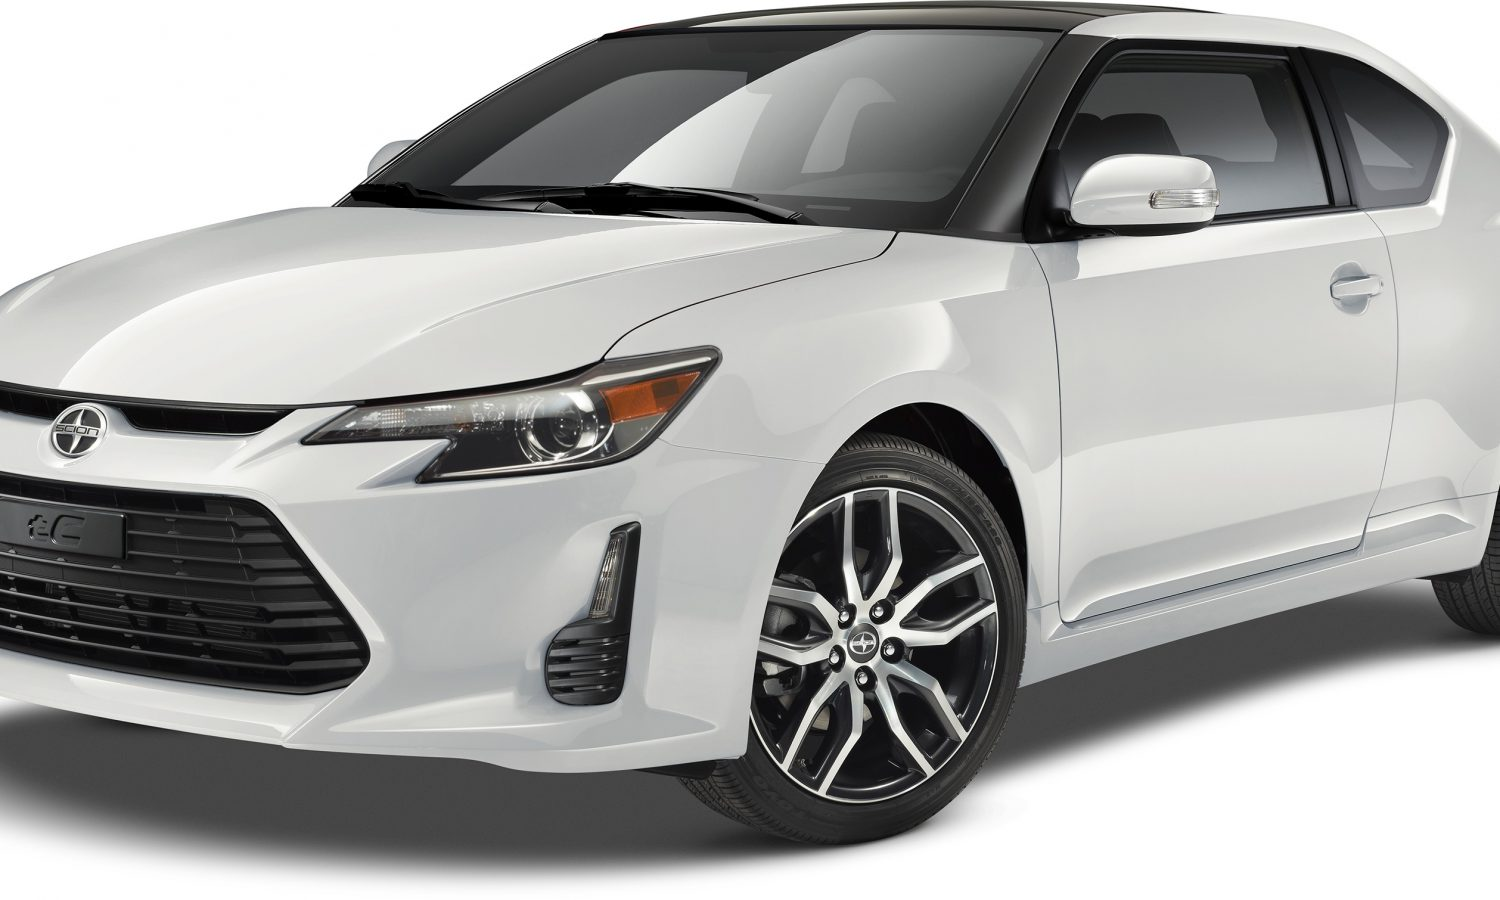 2015 Scion tC Builds on Sporty Driving Experience